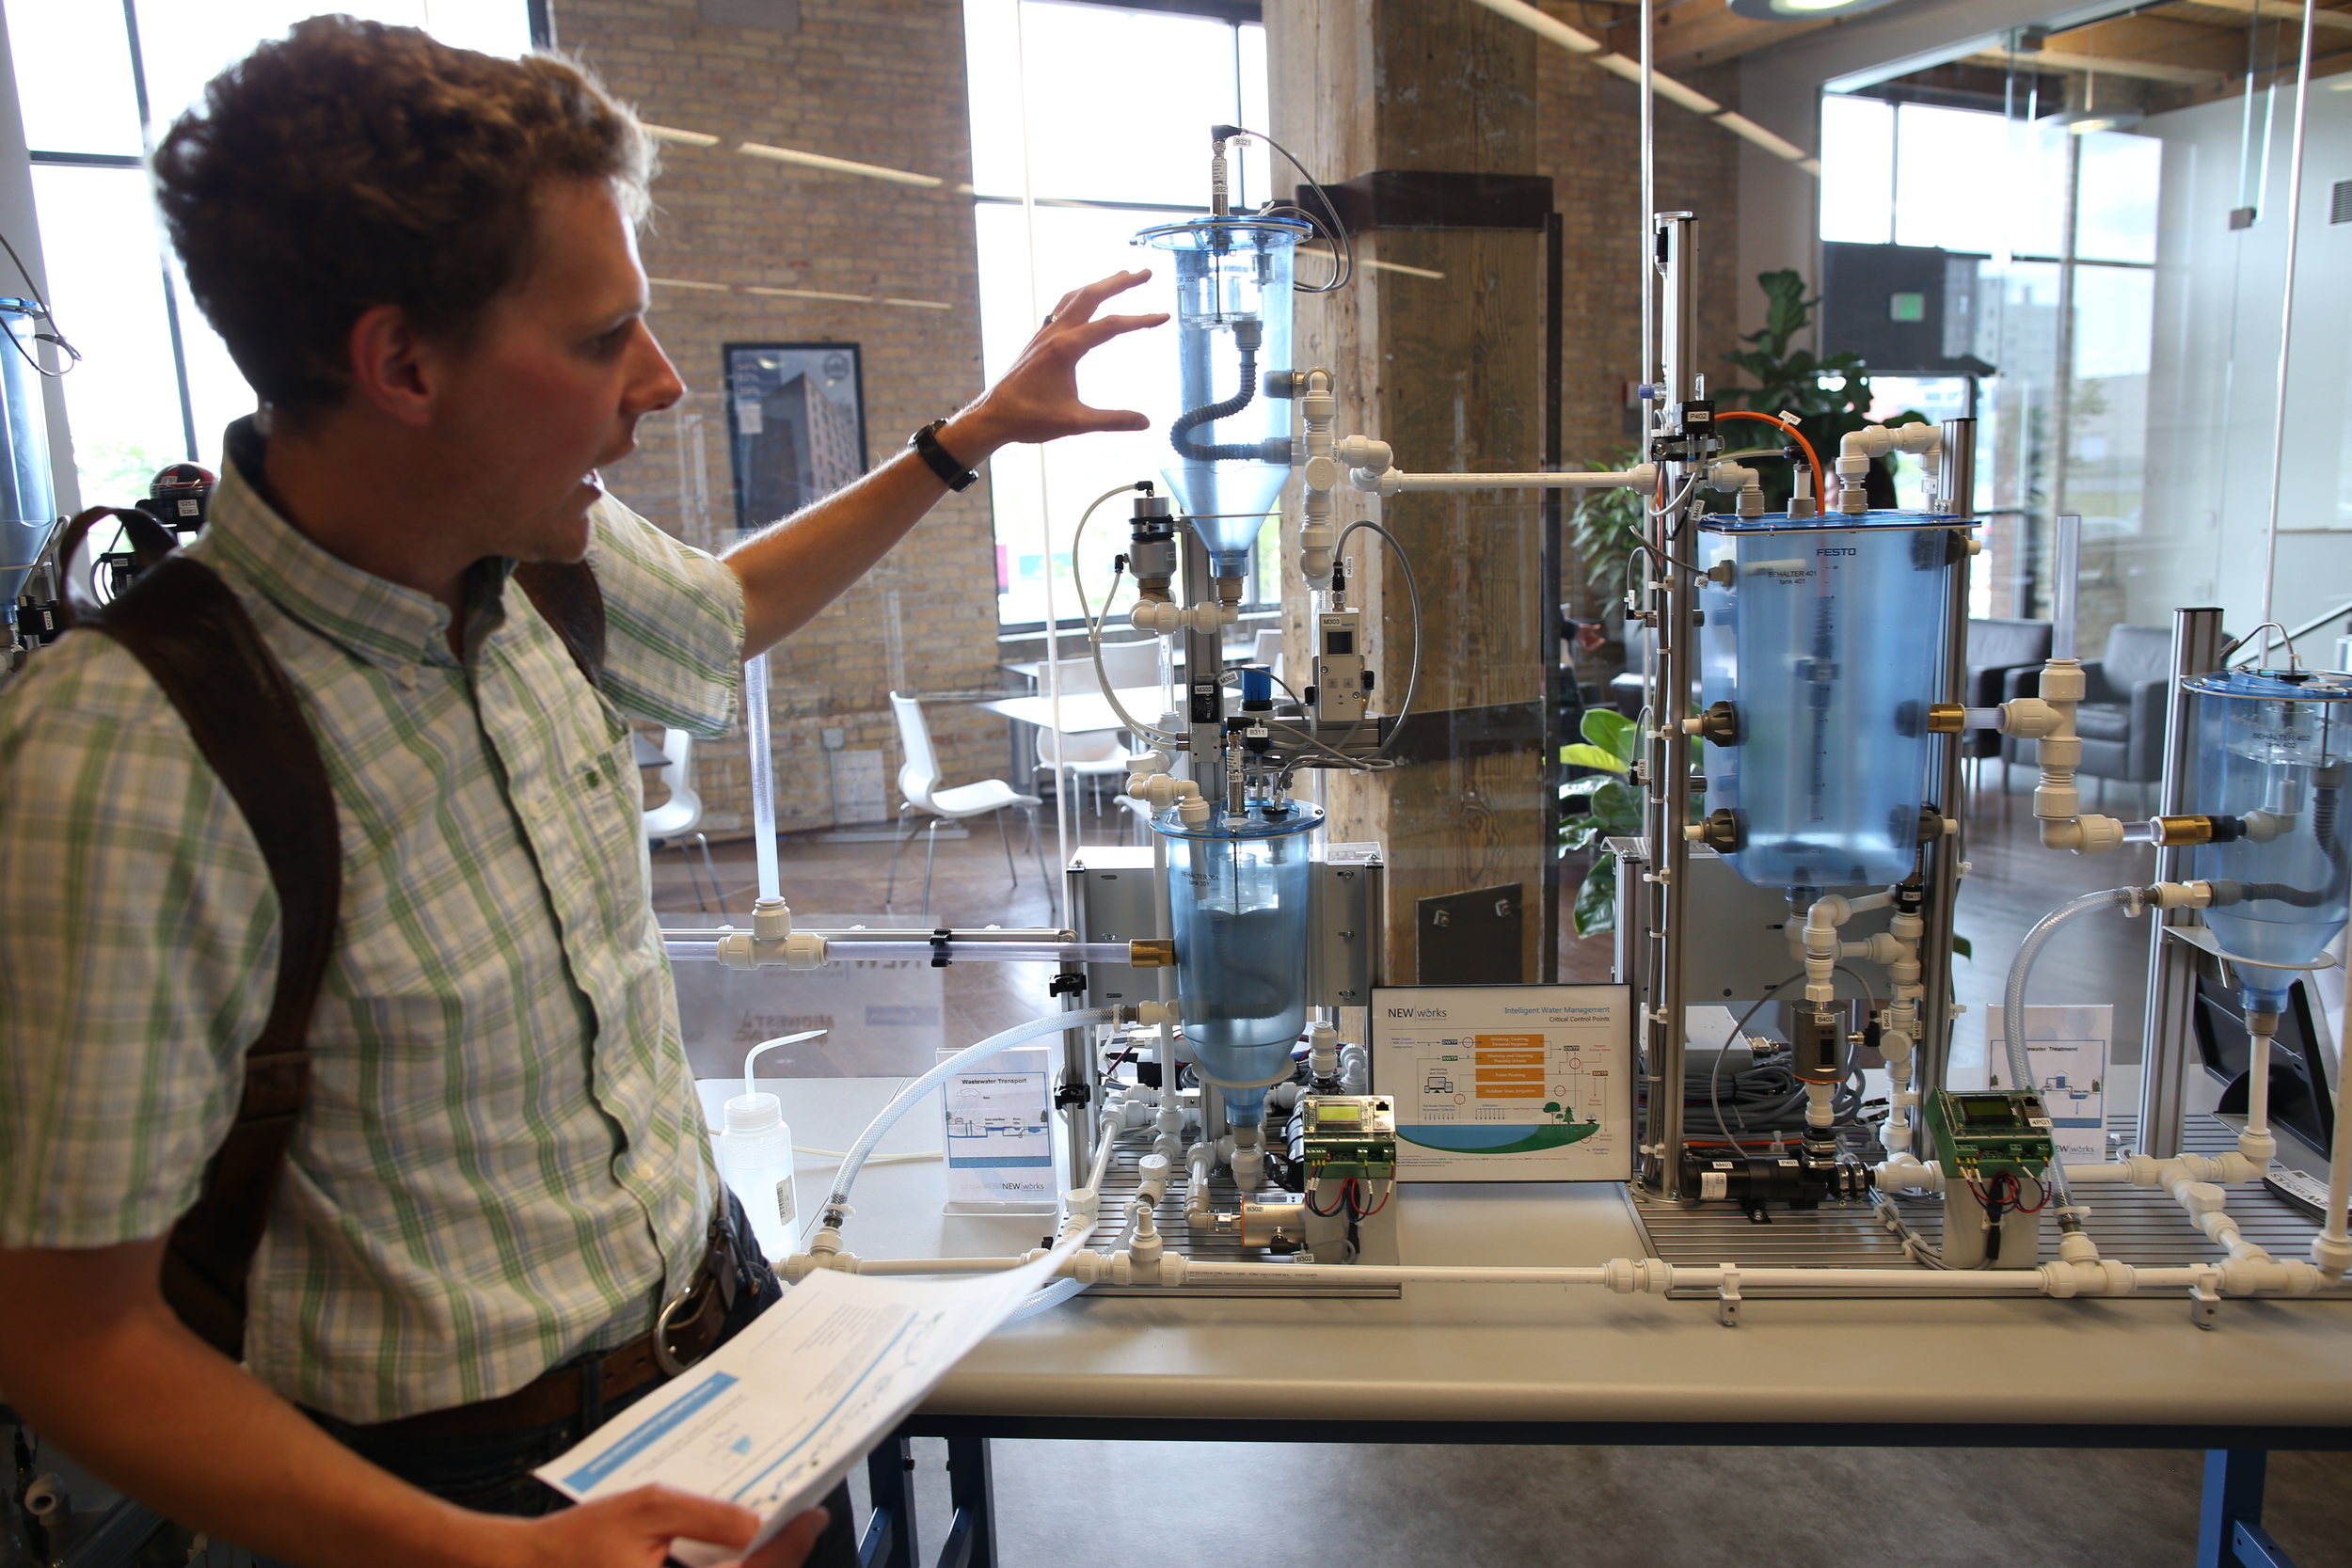 8/13/14  | MTP participant Nate Conroy explains a water filtration device that he uses to as a teaching aid help students develop science, technology, engineering and math skills. (Credit: Tyler Metcalfe, National Geographic Travel)